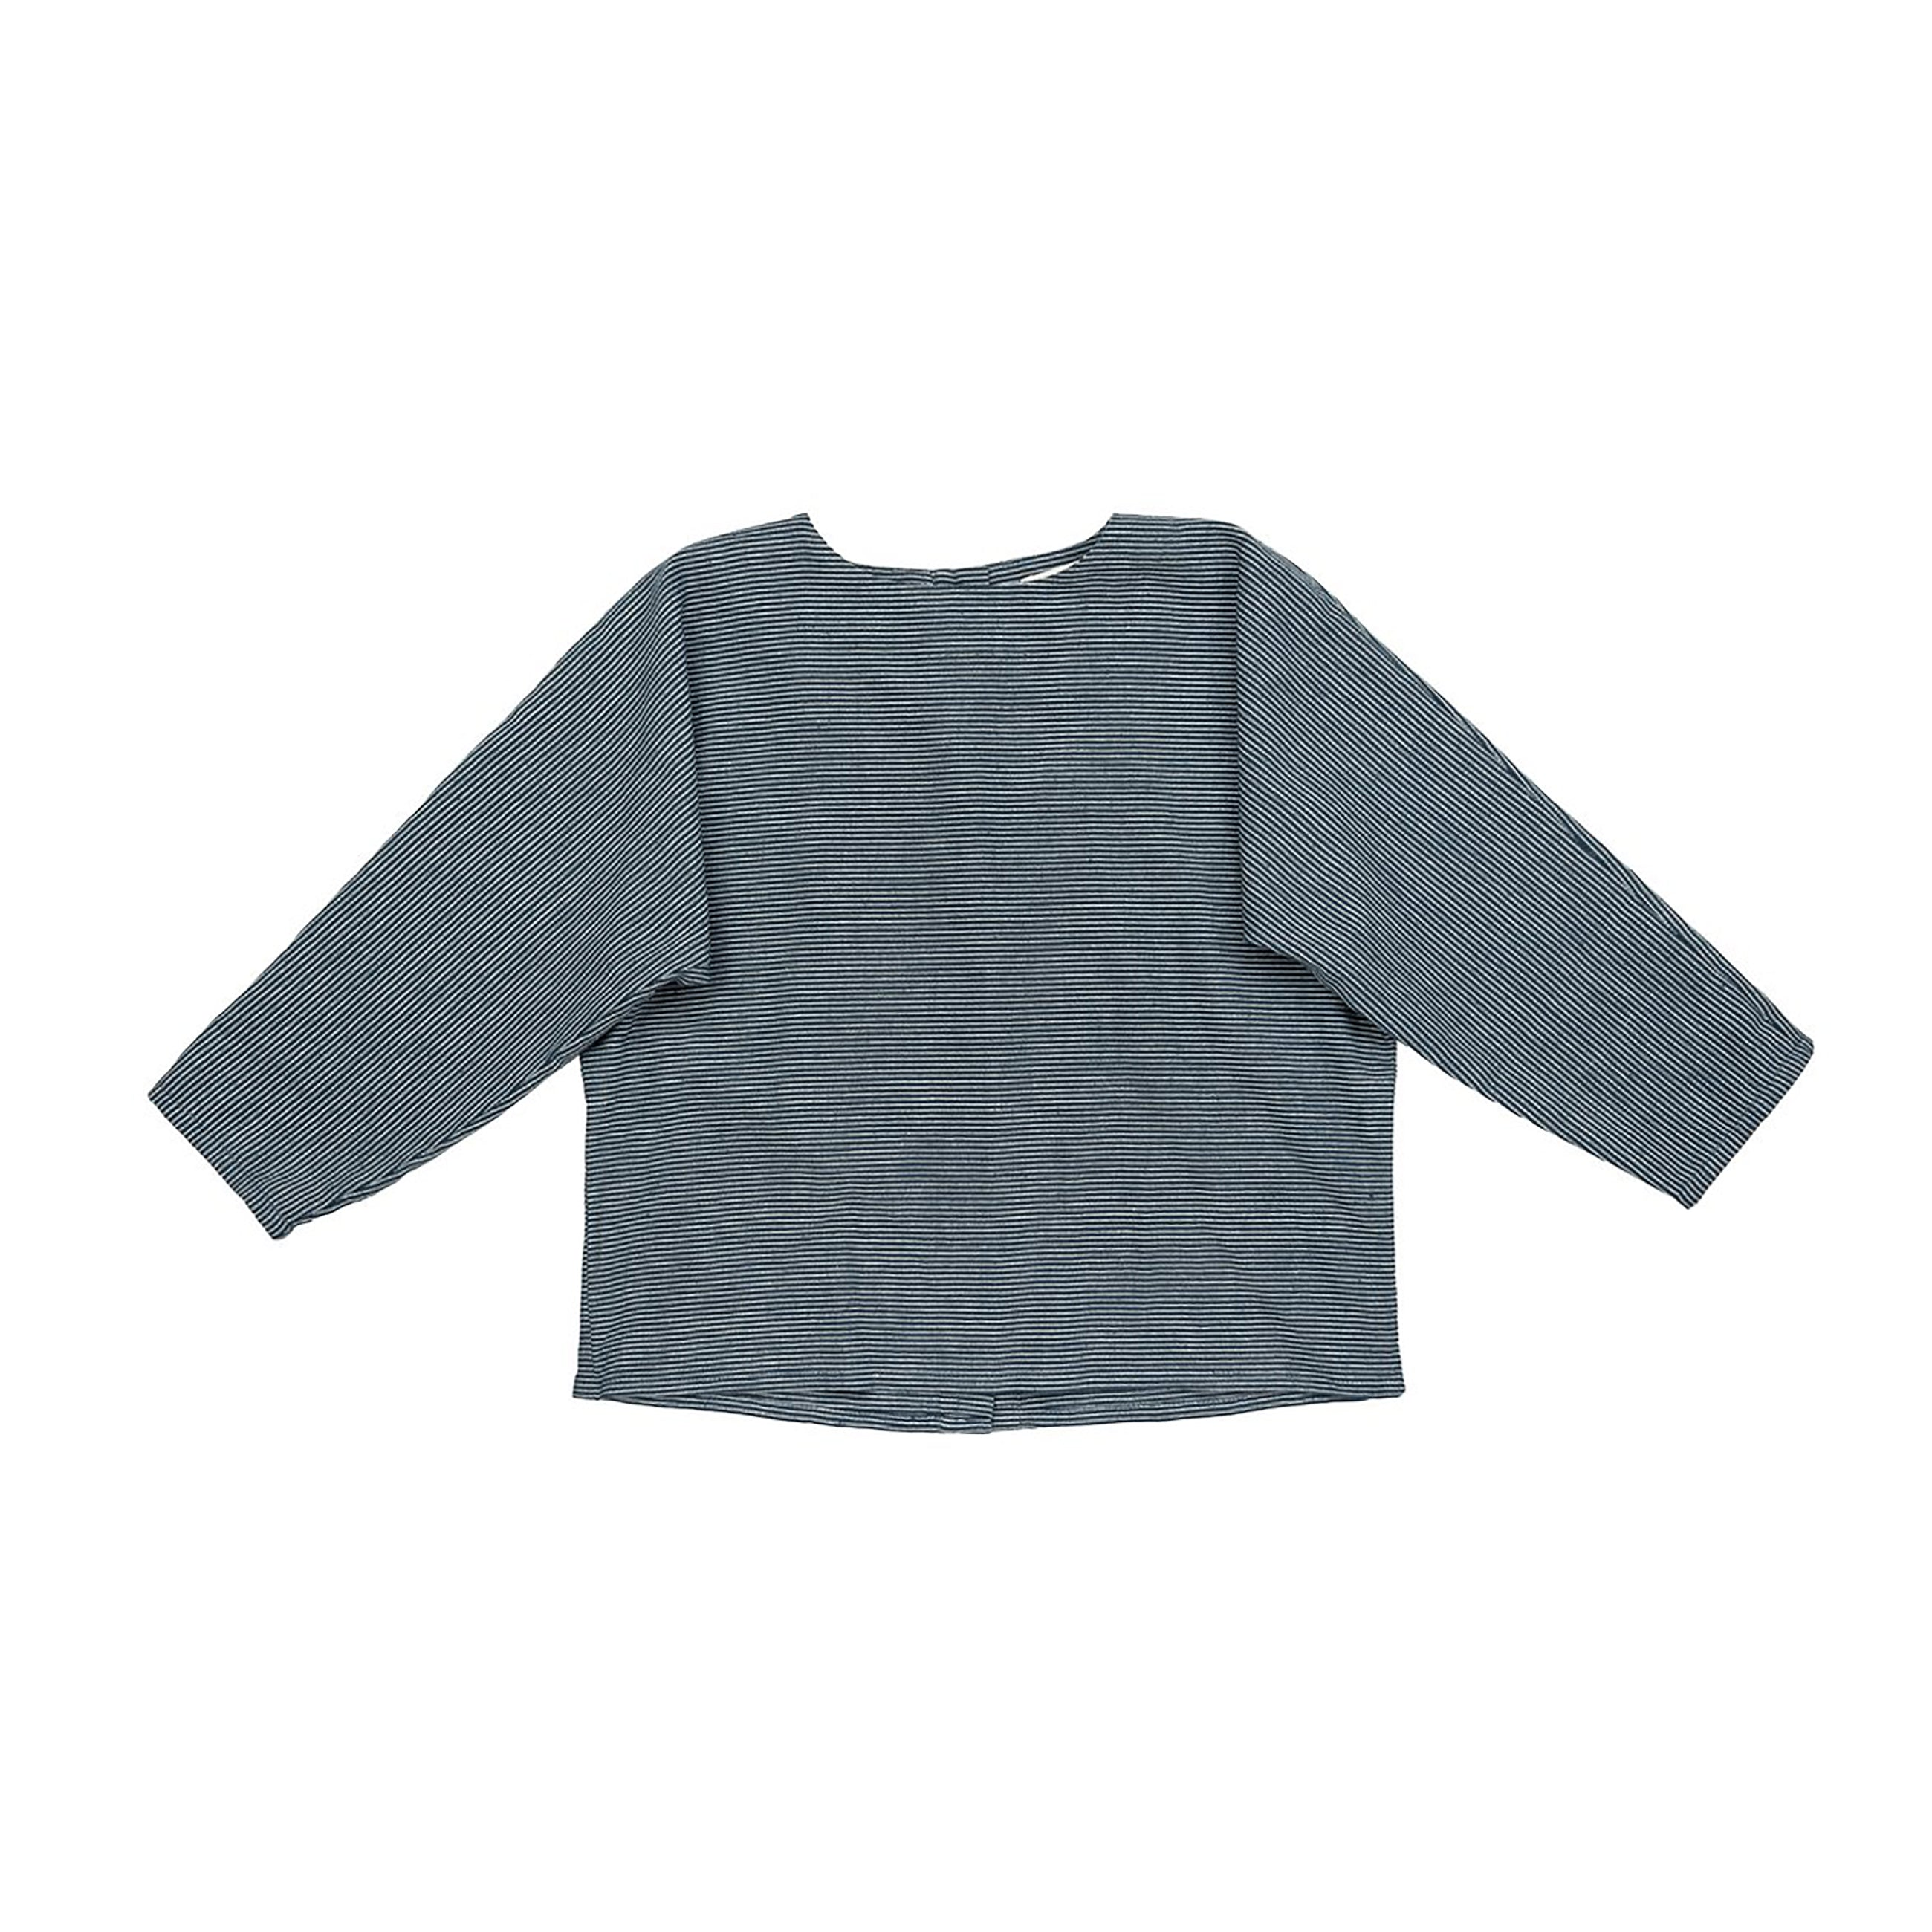 Ketiketa Sayaka Kid's Shirt Railroad Stripe Cotton | BIEN BIEN www.bienbienshop.com